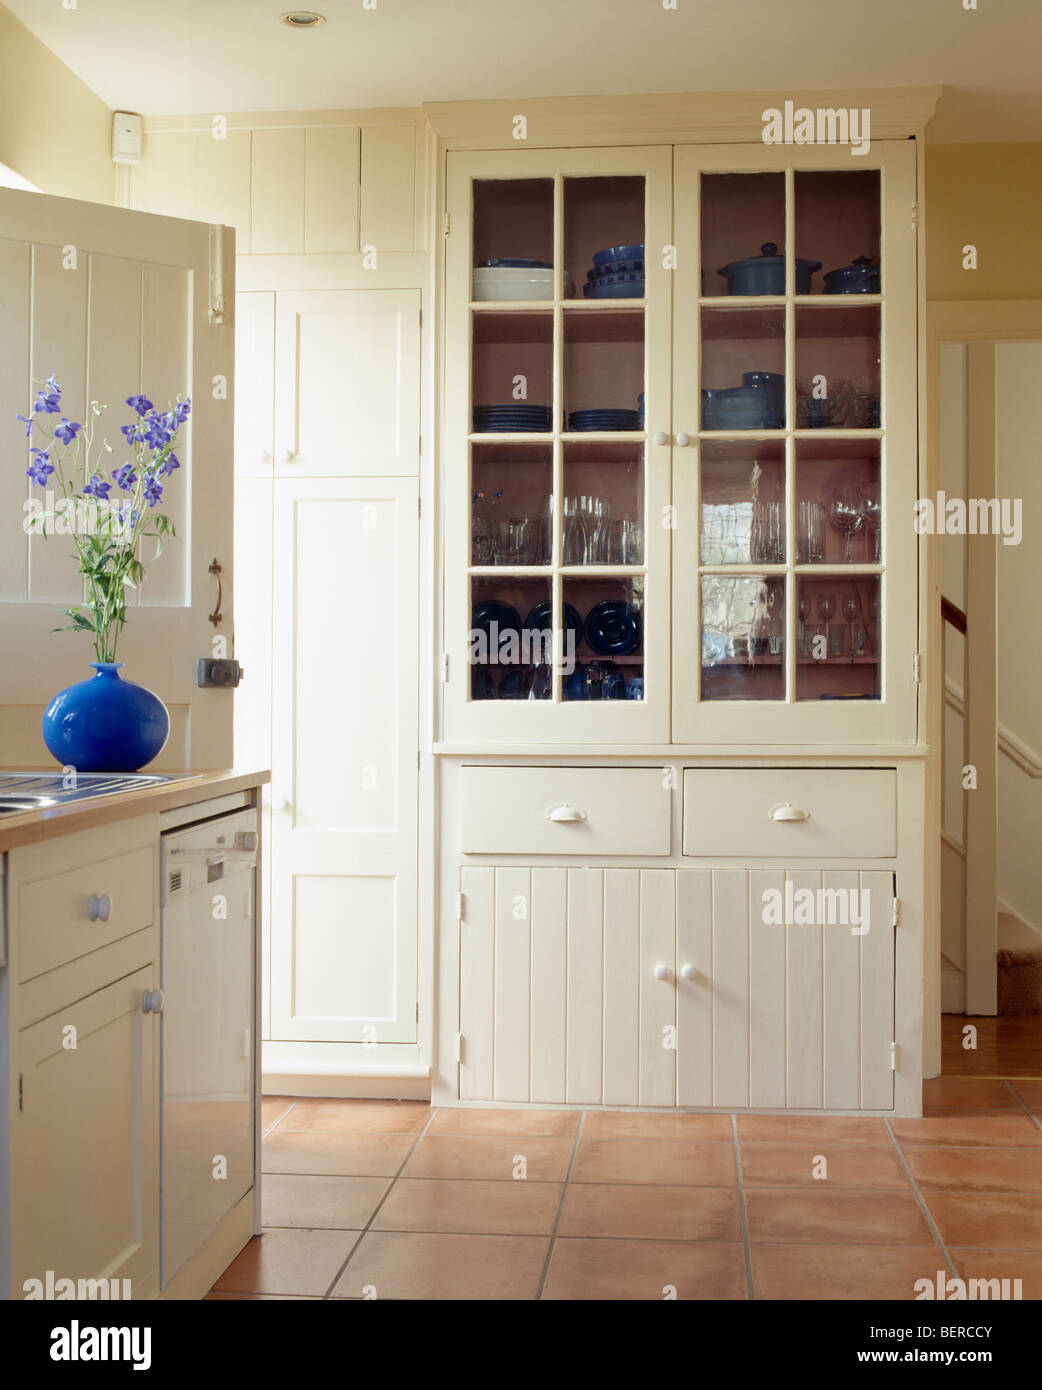 Fitted Cream Dresser In Cream Country Kitchen With Terracotta Tiled Floor